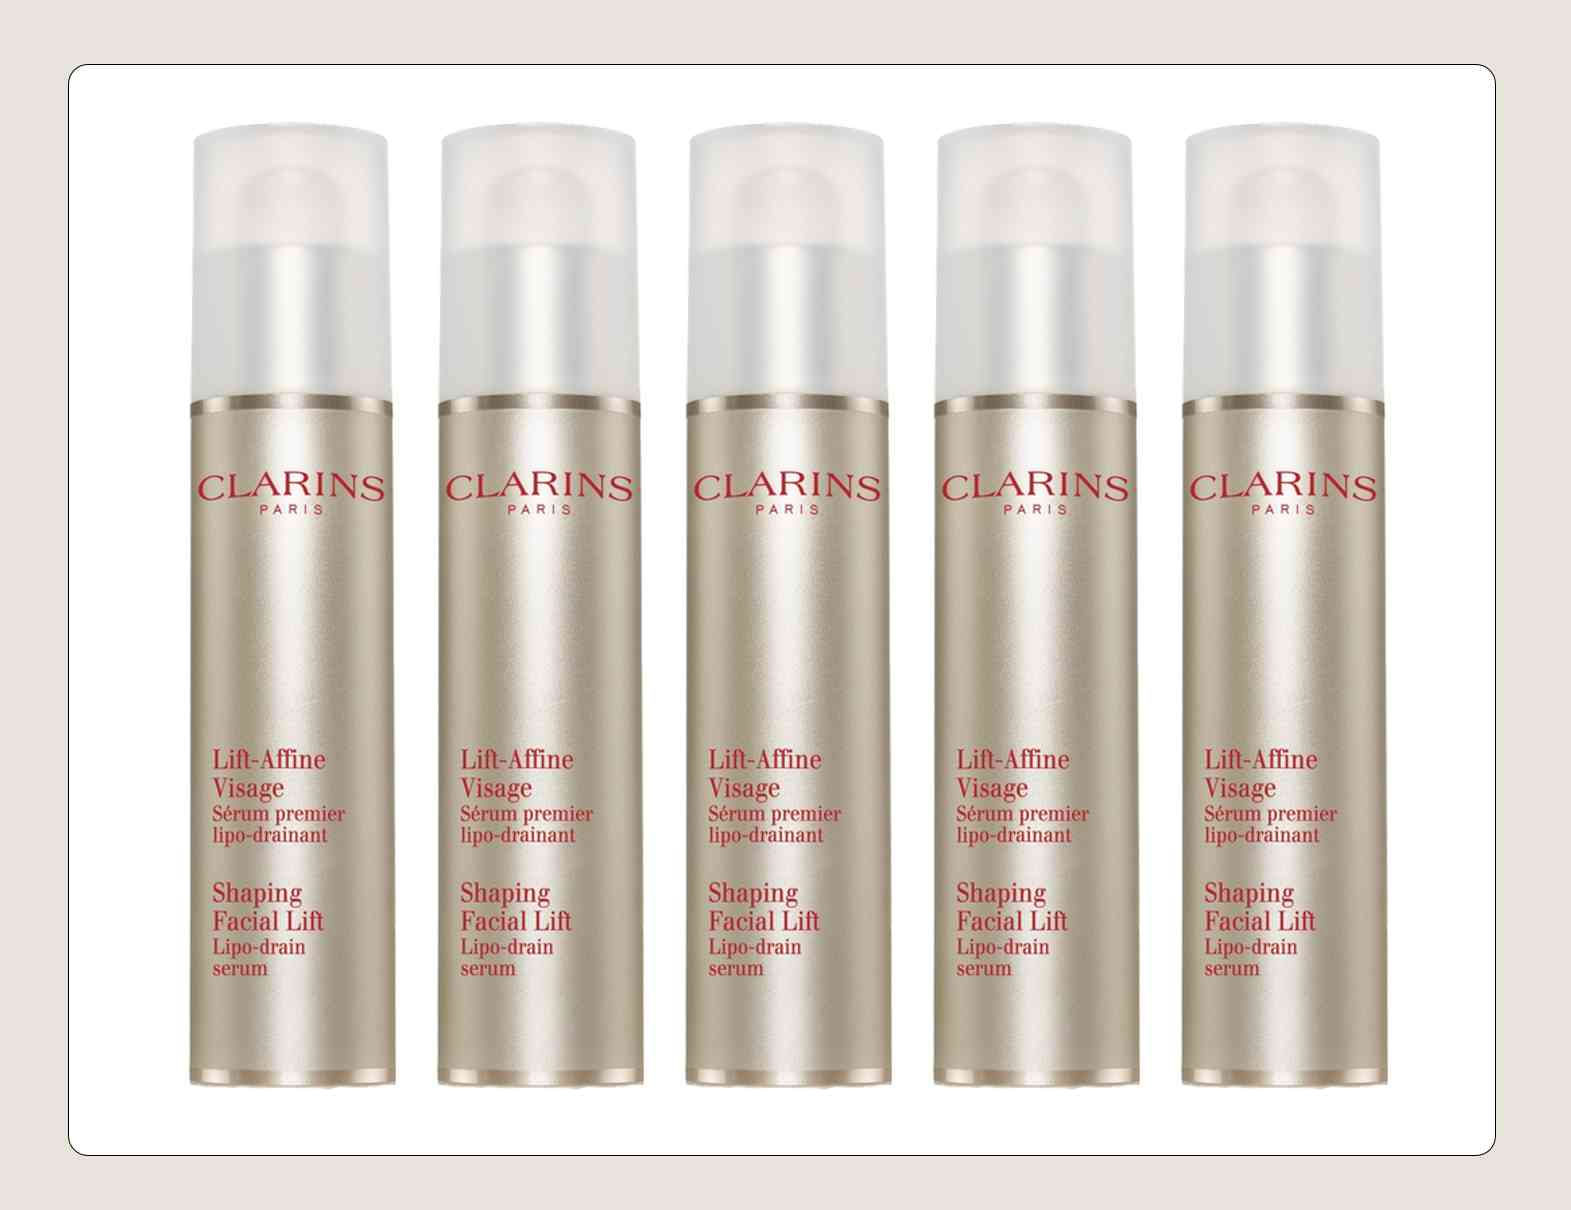 Clarins-Shaping-Facial-Lift-Total-V-Contouring-Serum-Review